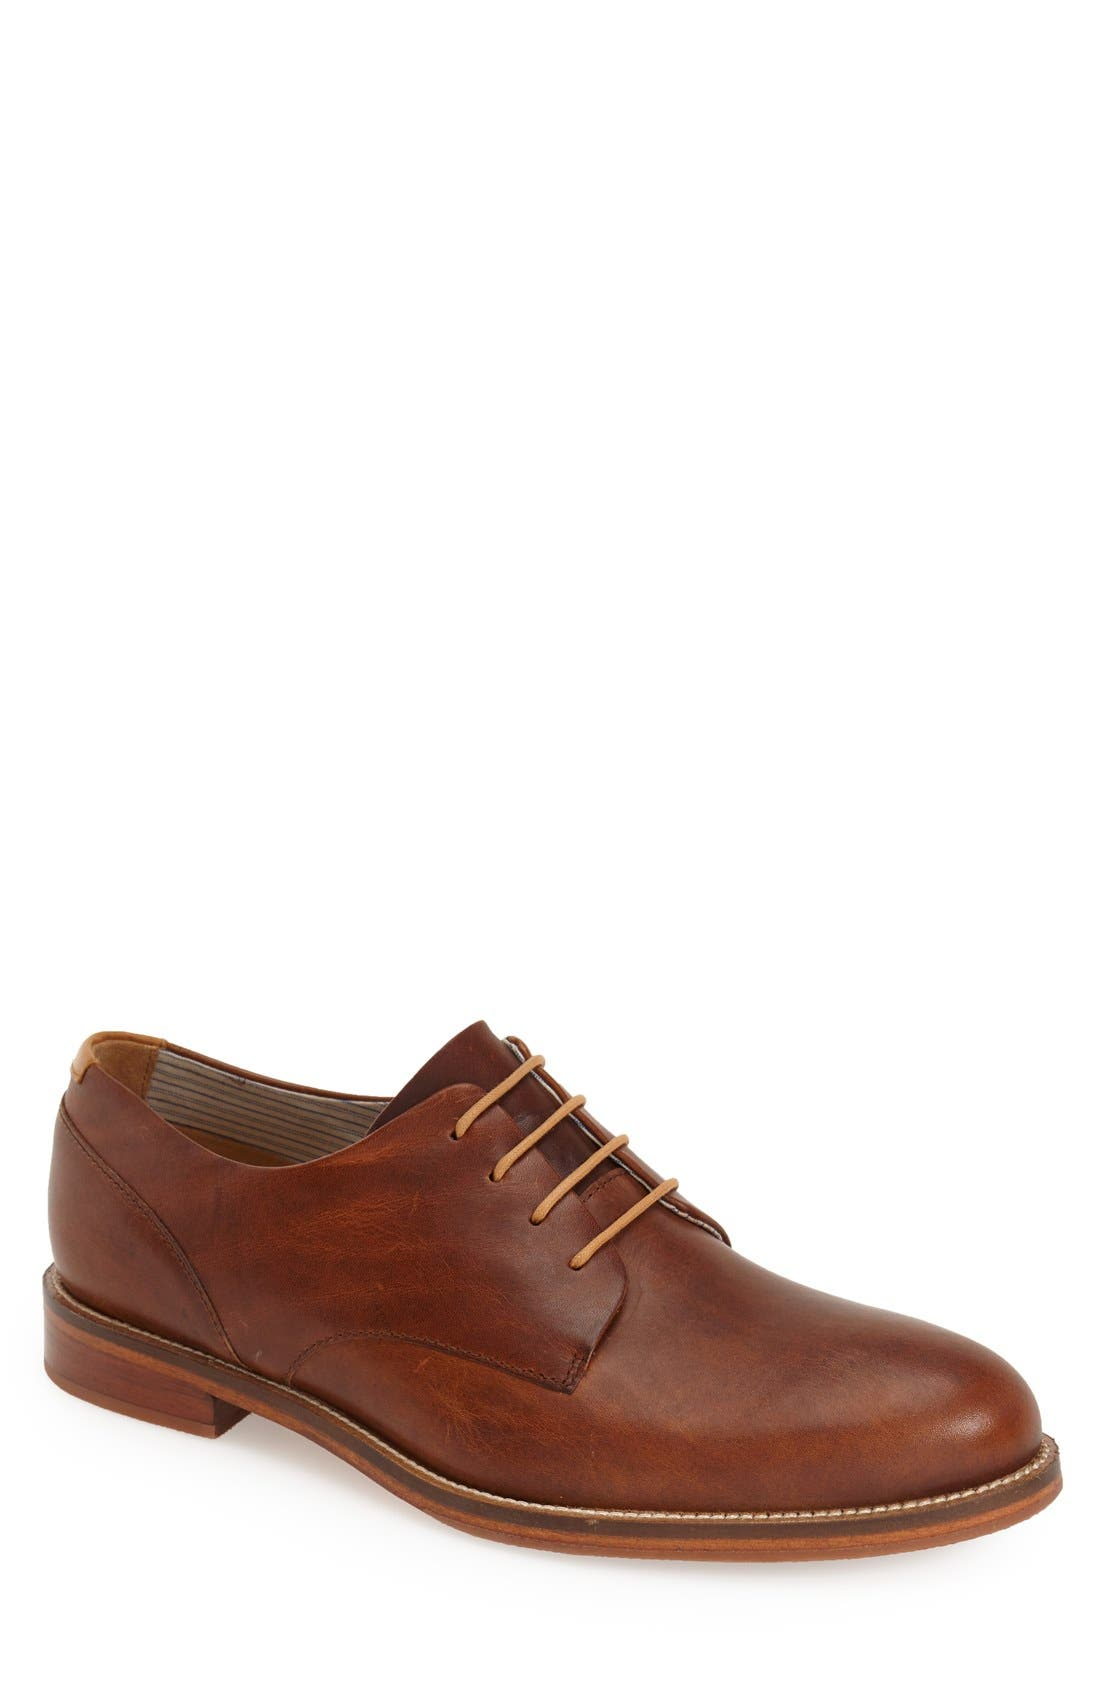 Alternate Image 1 Selected - J SHOES 'William Plus' Plain Toe Derby (Men)